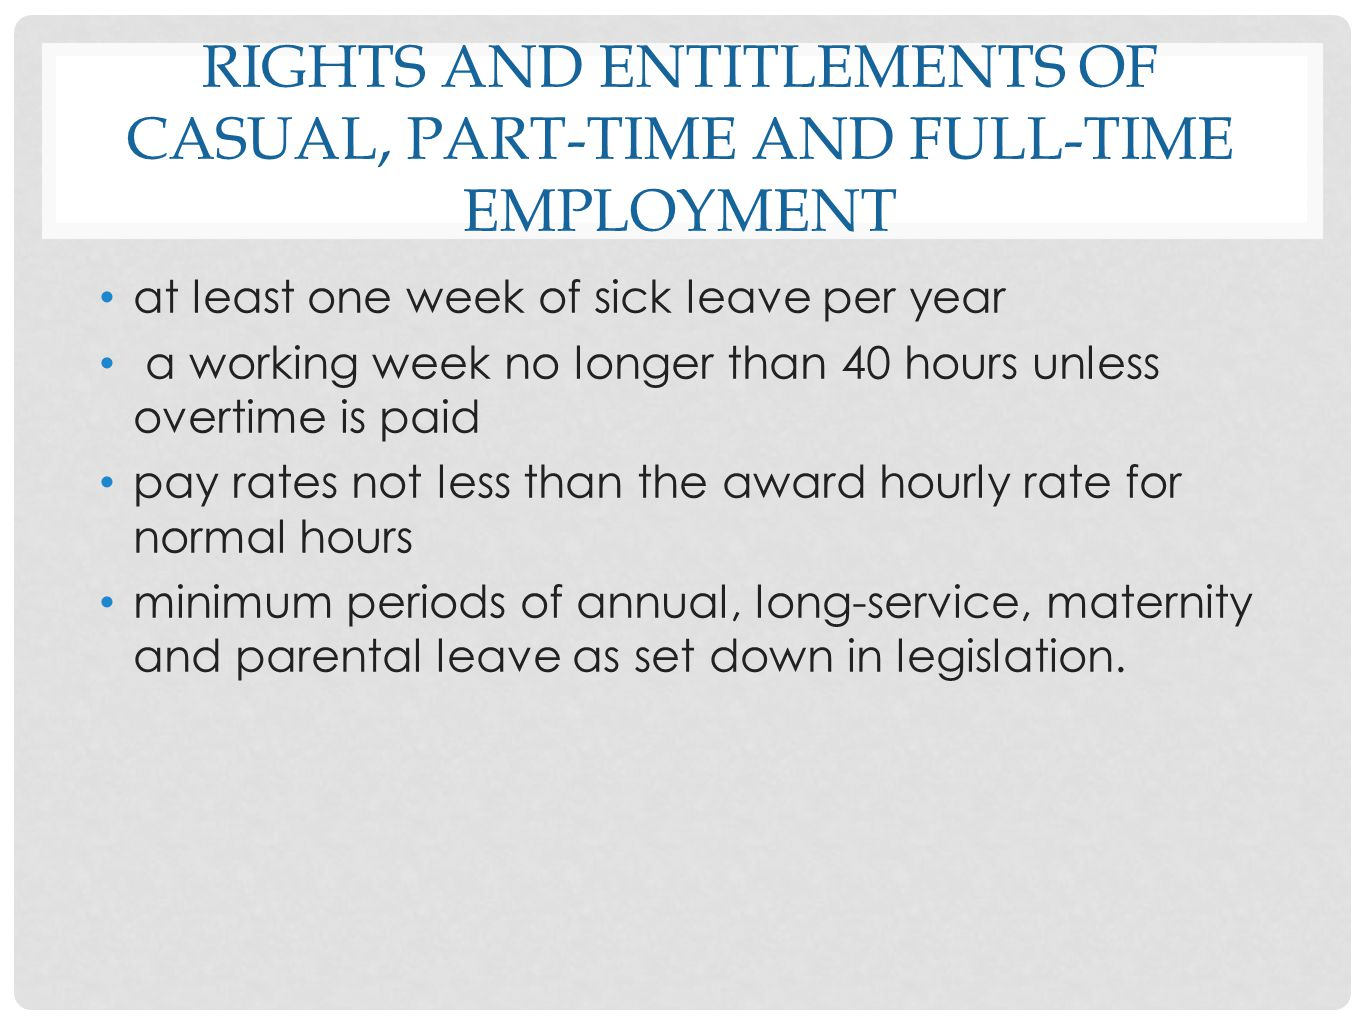 rights and entitlements of casual, part-time and full-time employment